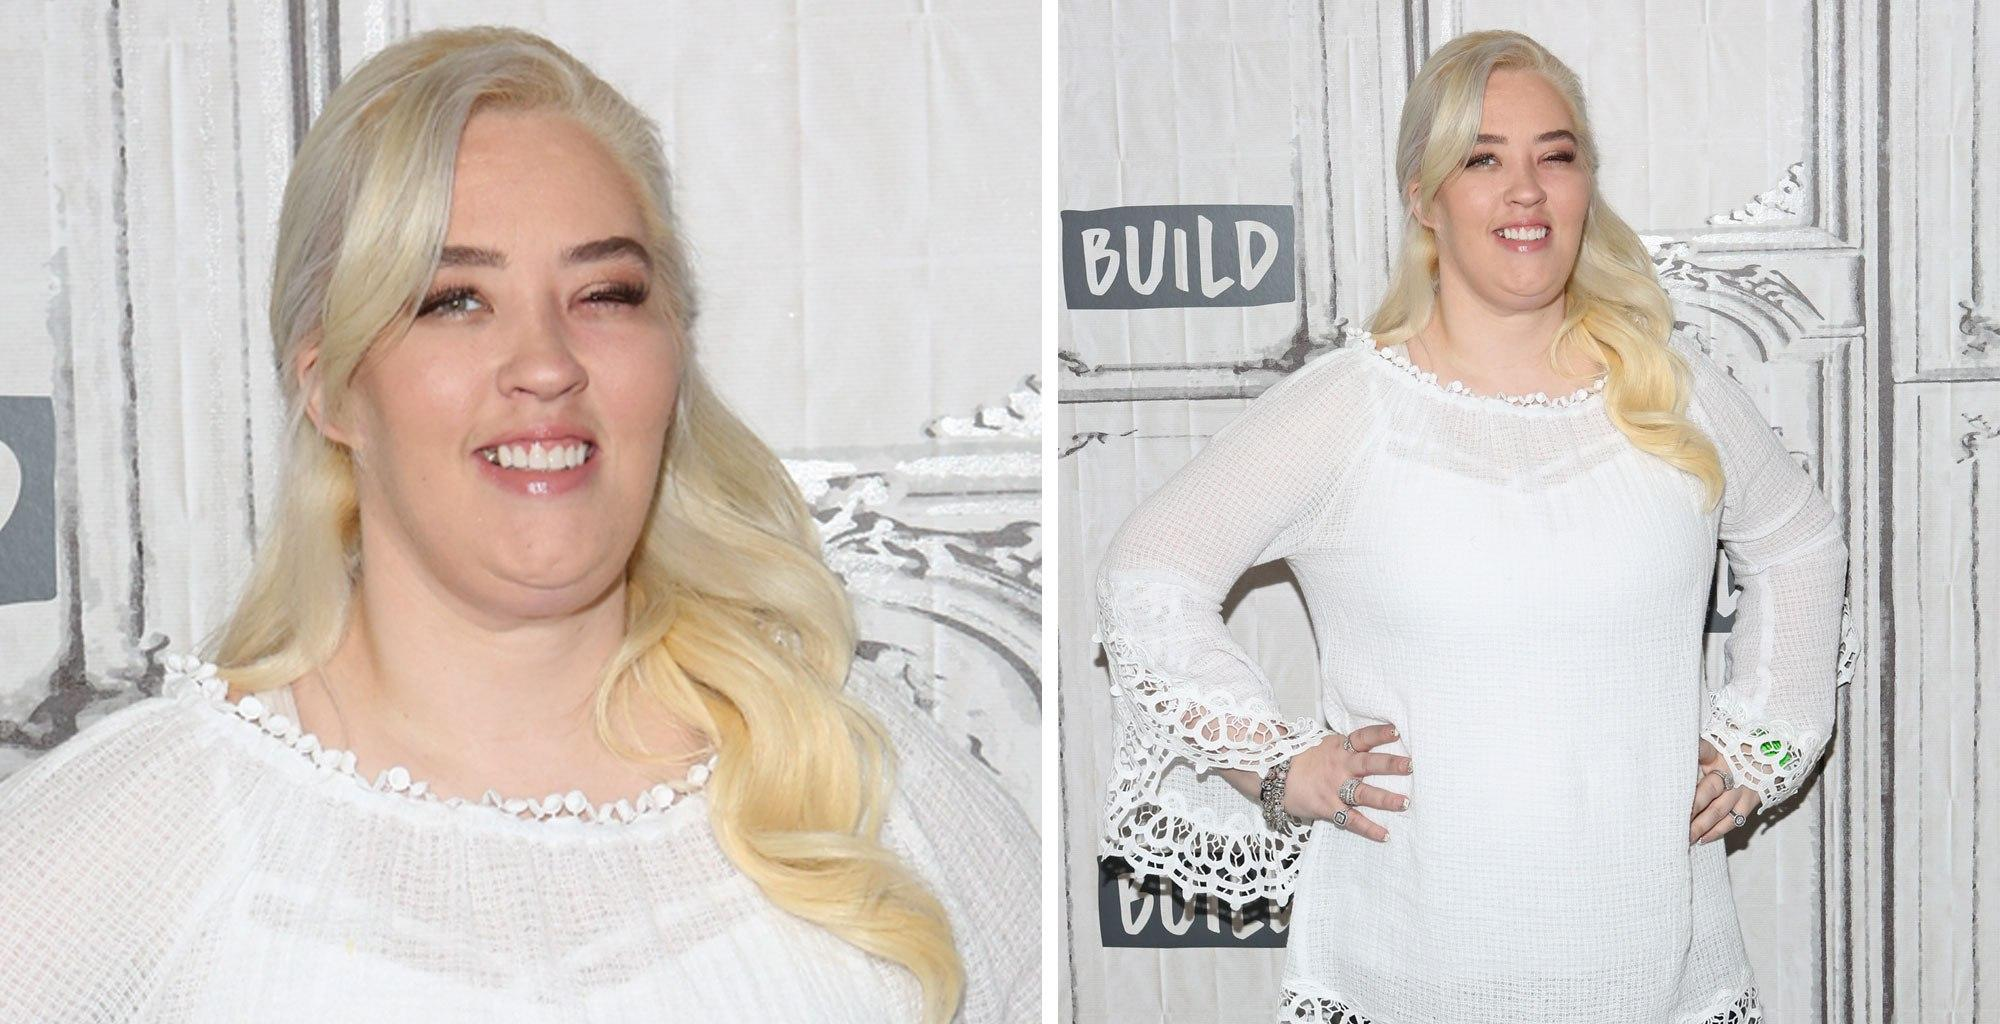 Mama June Talks About Weight Gain And Pregnancy While Alana Thompson And Pumpkin Battle Their Own Problems In 'From Not To Hot' New Trailer